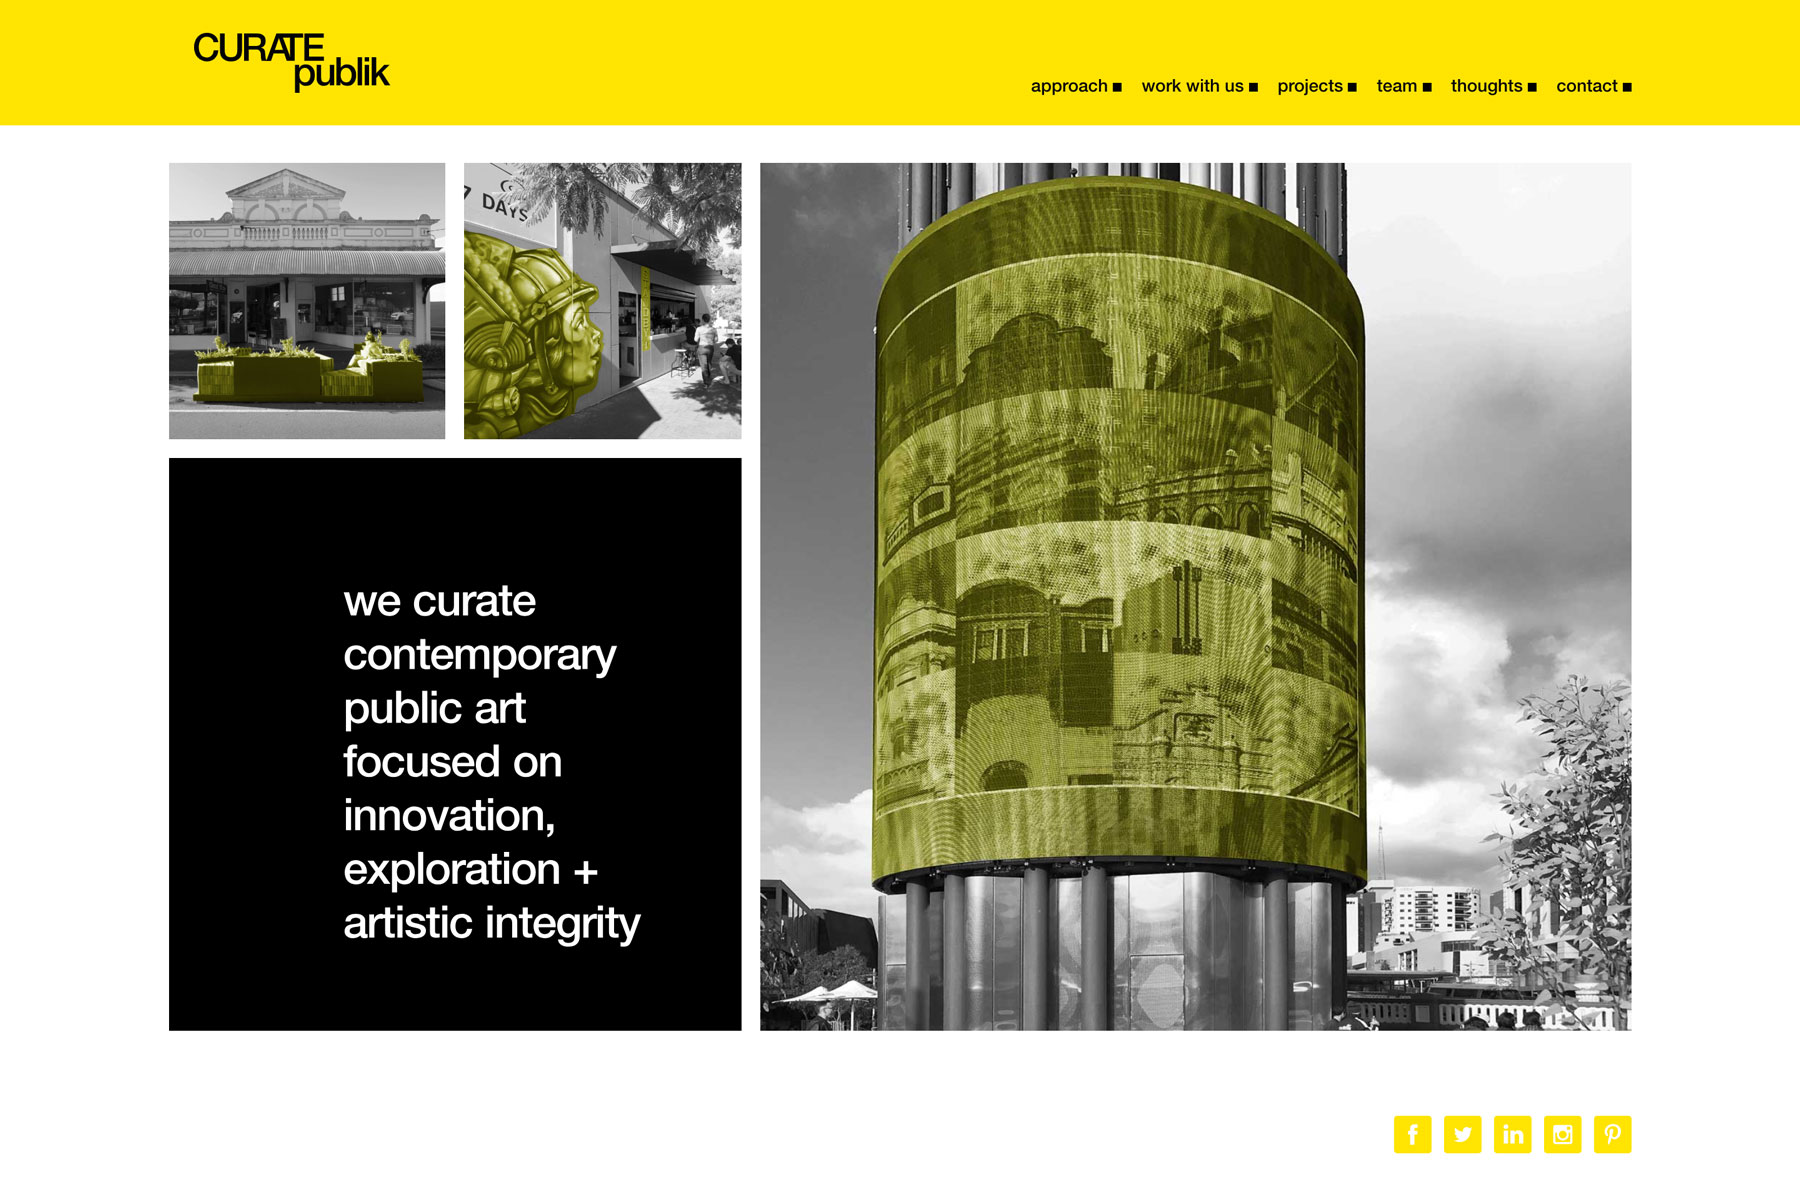 curatepublik-superminimal.web